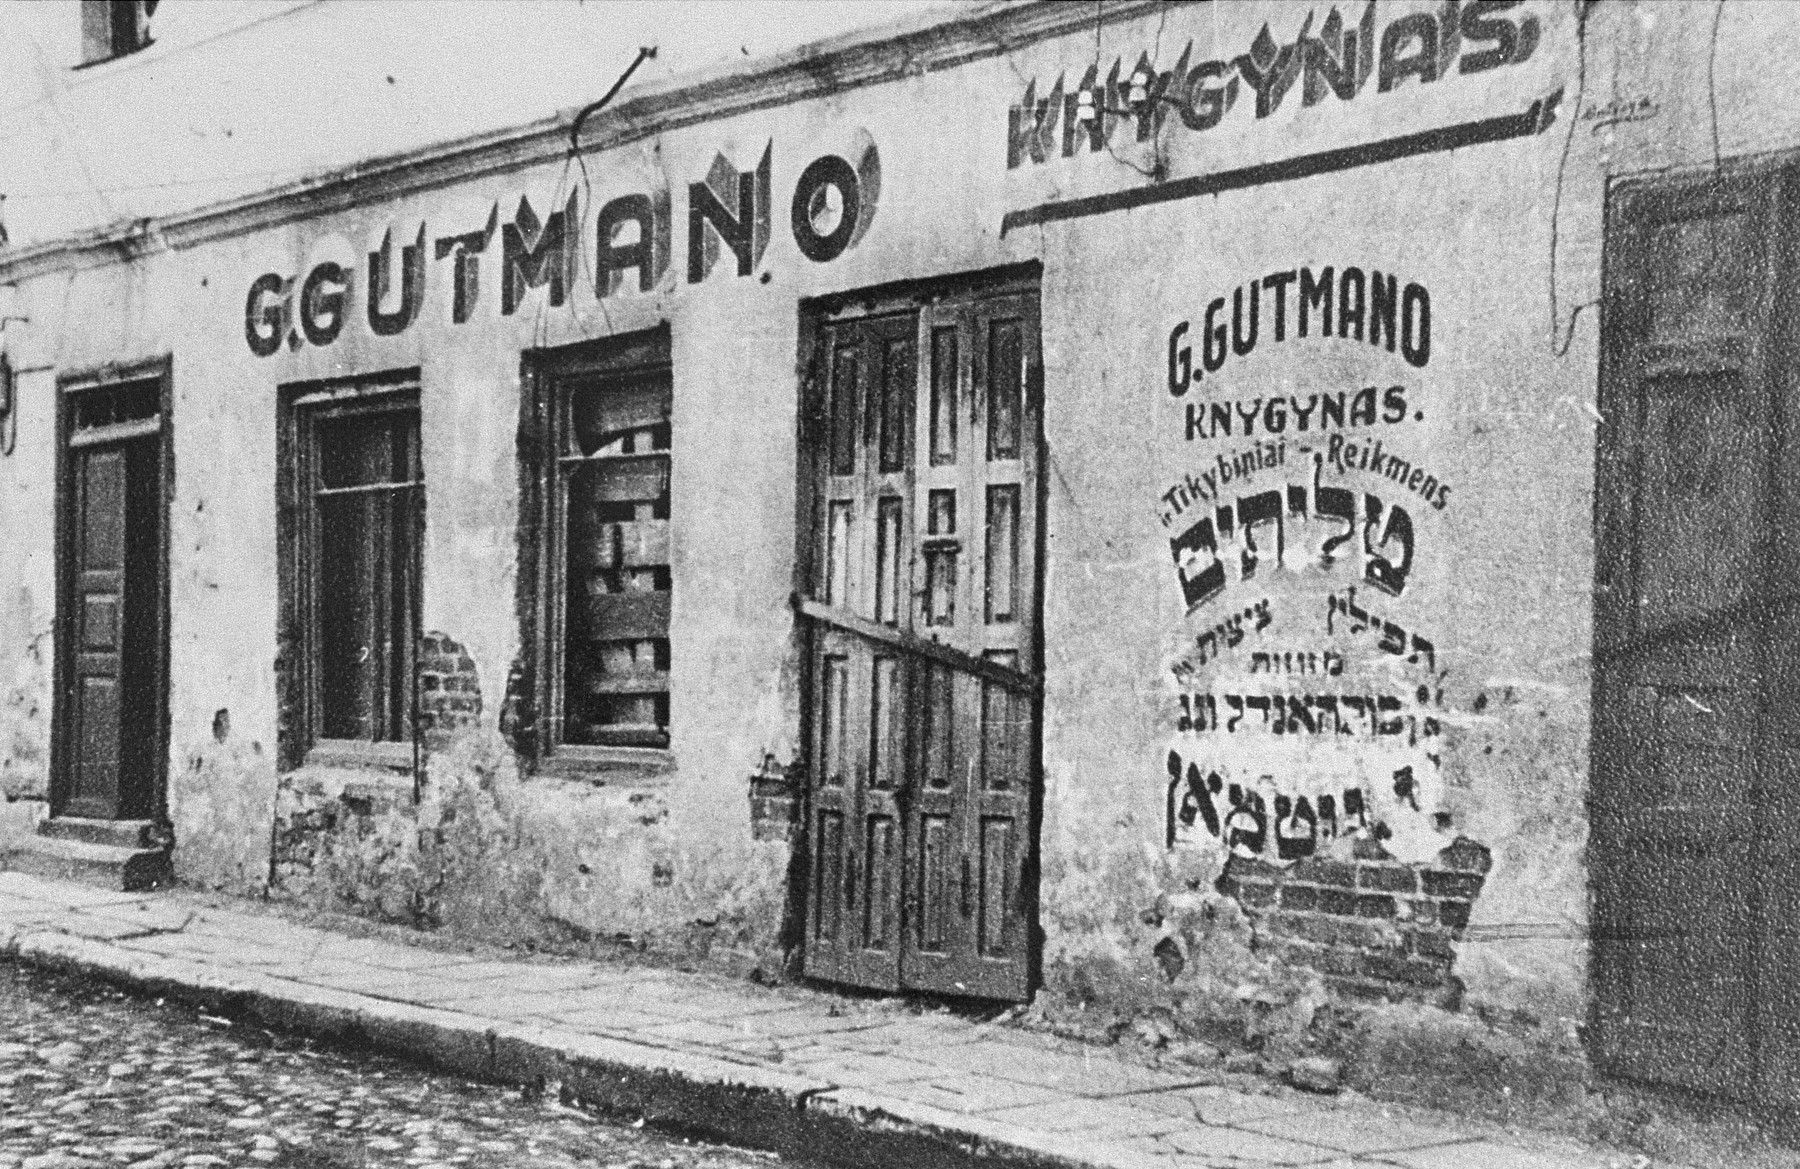 View of a destroyed building in Kovno which housed the G. Gutman Judaica store.